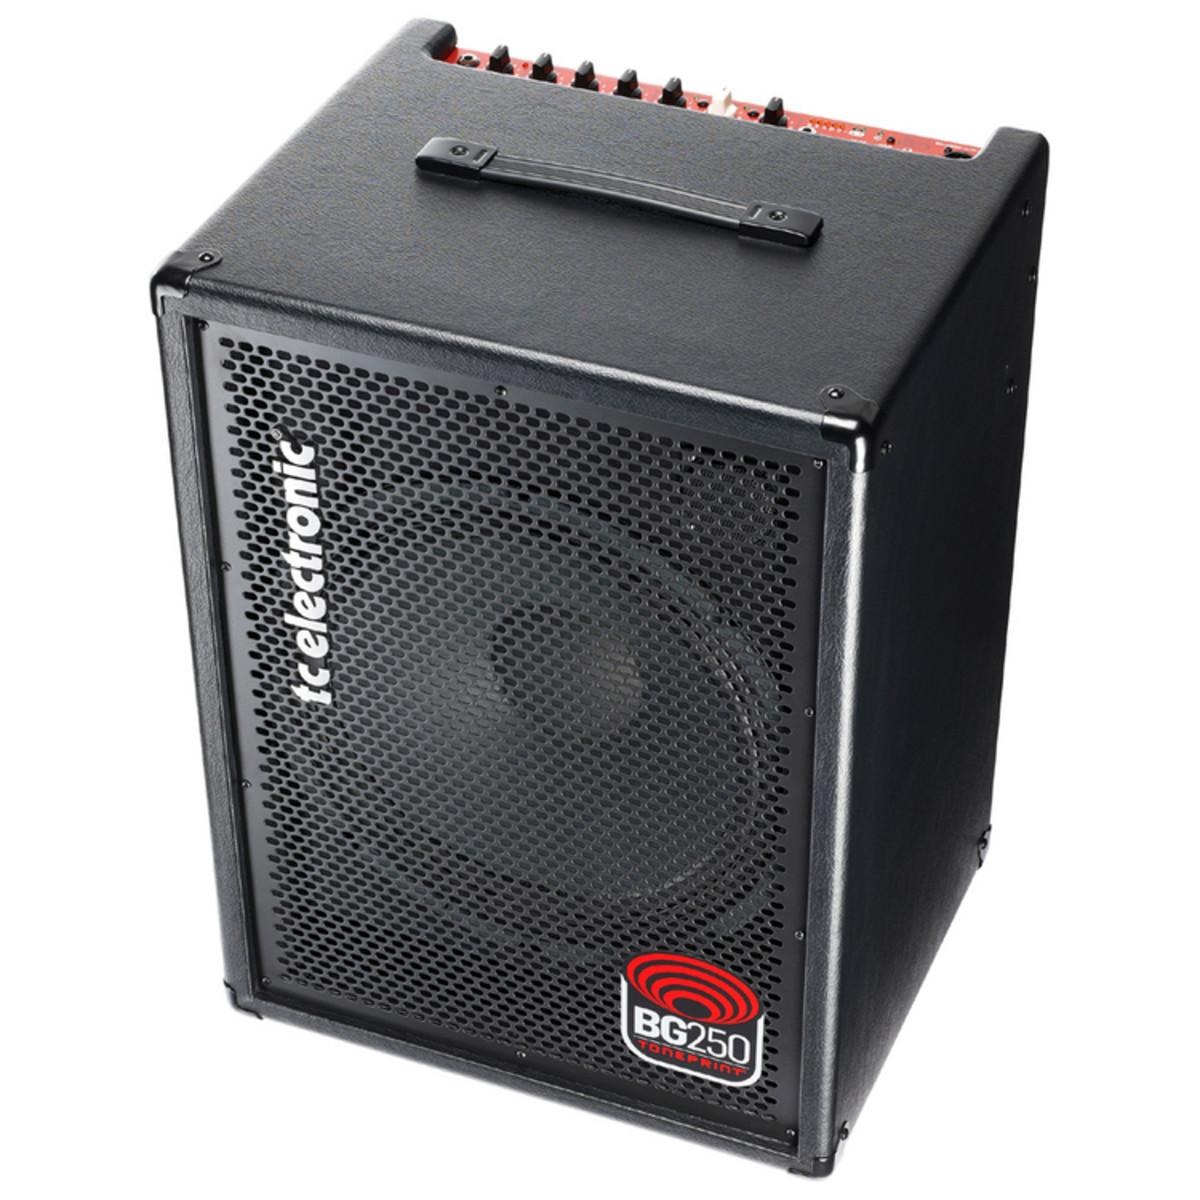 tc electronic bg250 bass combo amp nearly new at. Black Bedroom Furniture Sets. Home Design Ideas